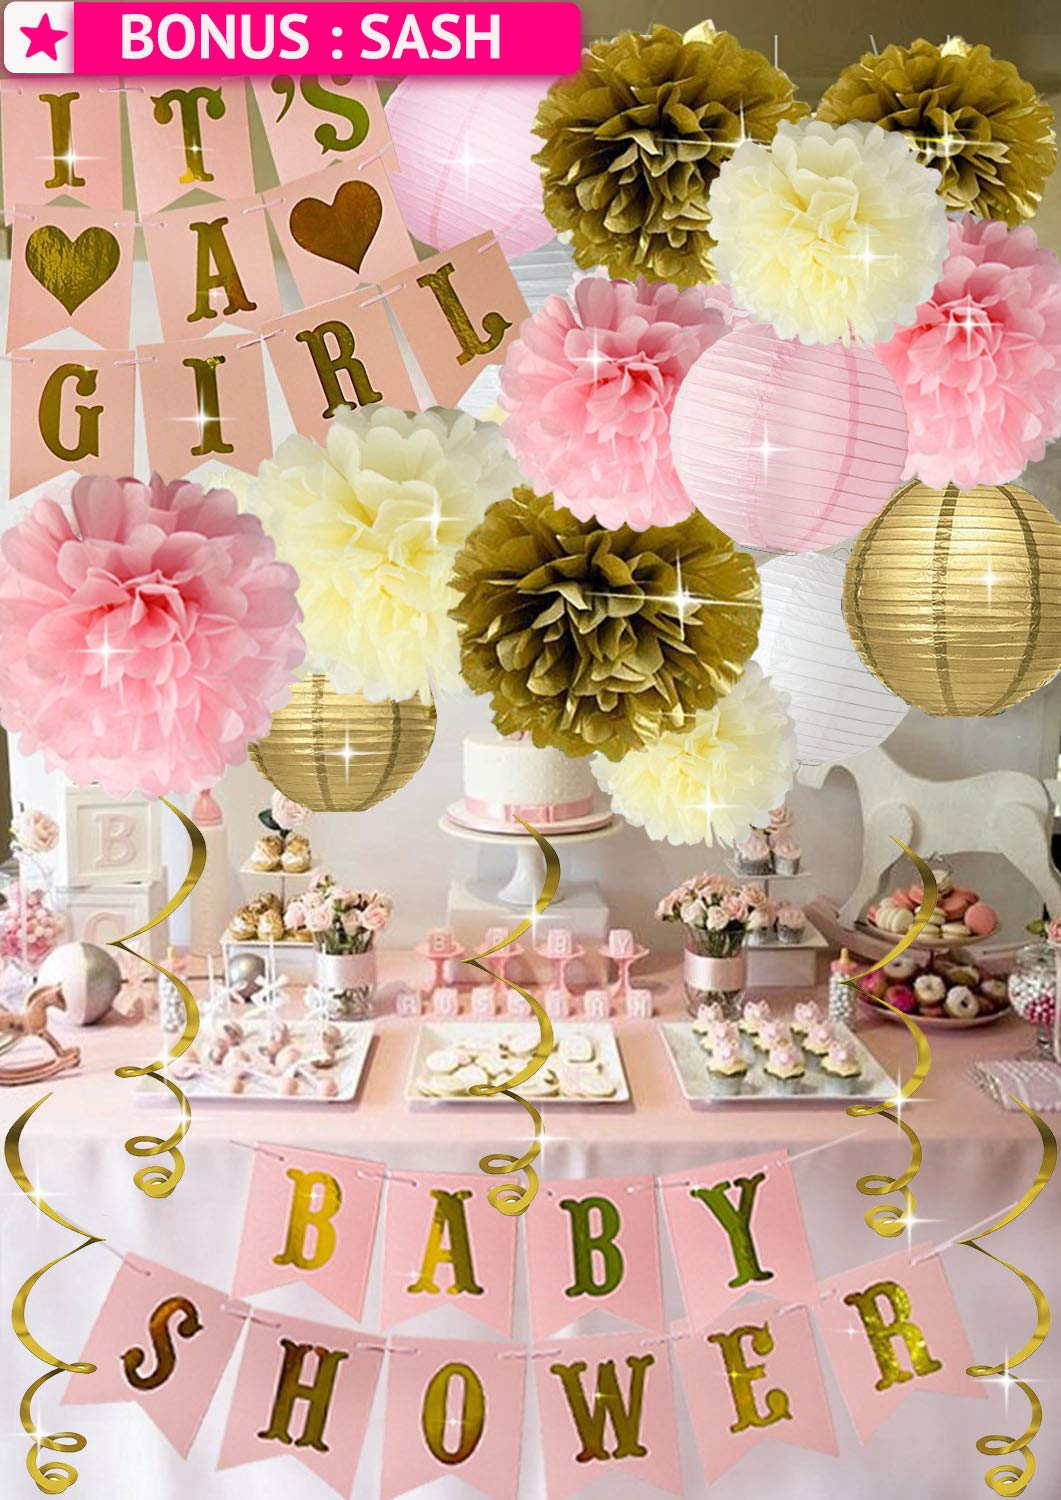 Baby Shower Decorations for Girl Pink Gold Princess It's A Girl Banner Poms Lanterns Mom To Be Sash by PGNART